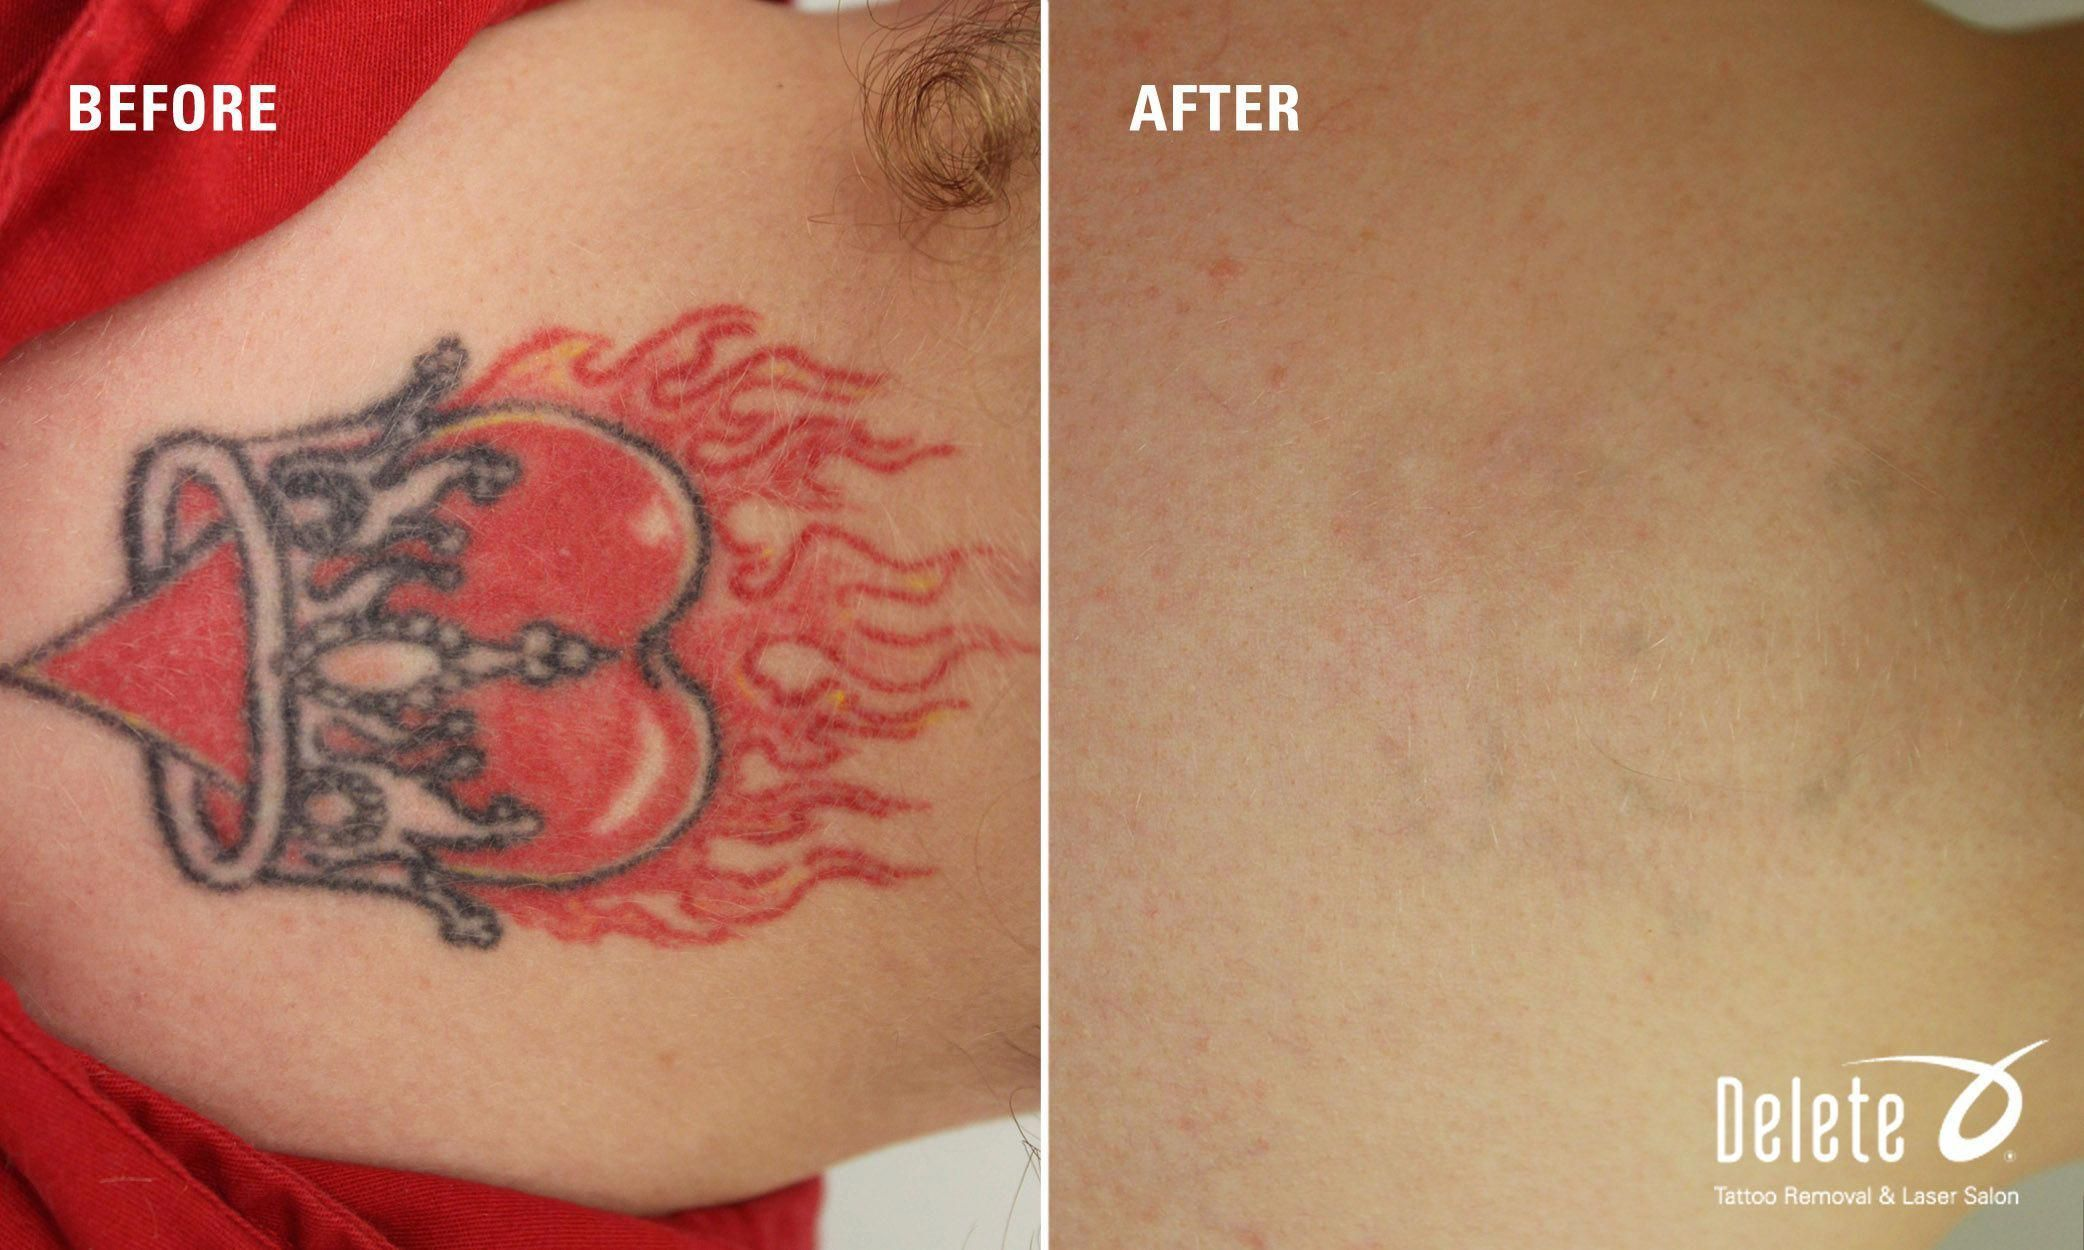 The Summer Of Extreme Temperatures Continues This Week S Before After Picoway Laser Tattoo Removal Is Hot When The F Tattoos Laser Tattoo Tattoo Removal